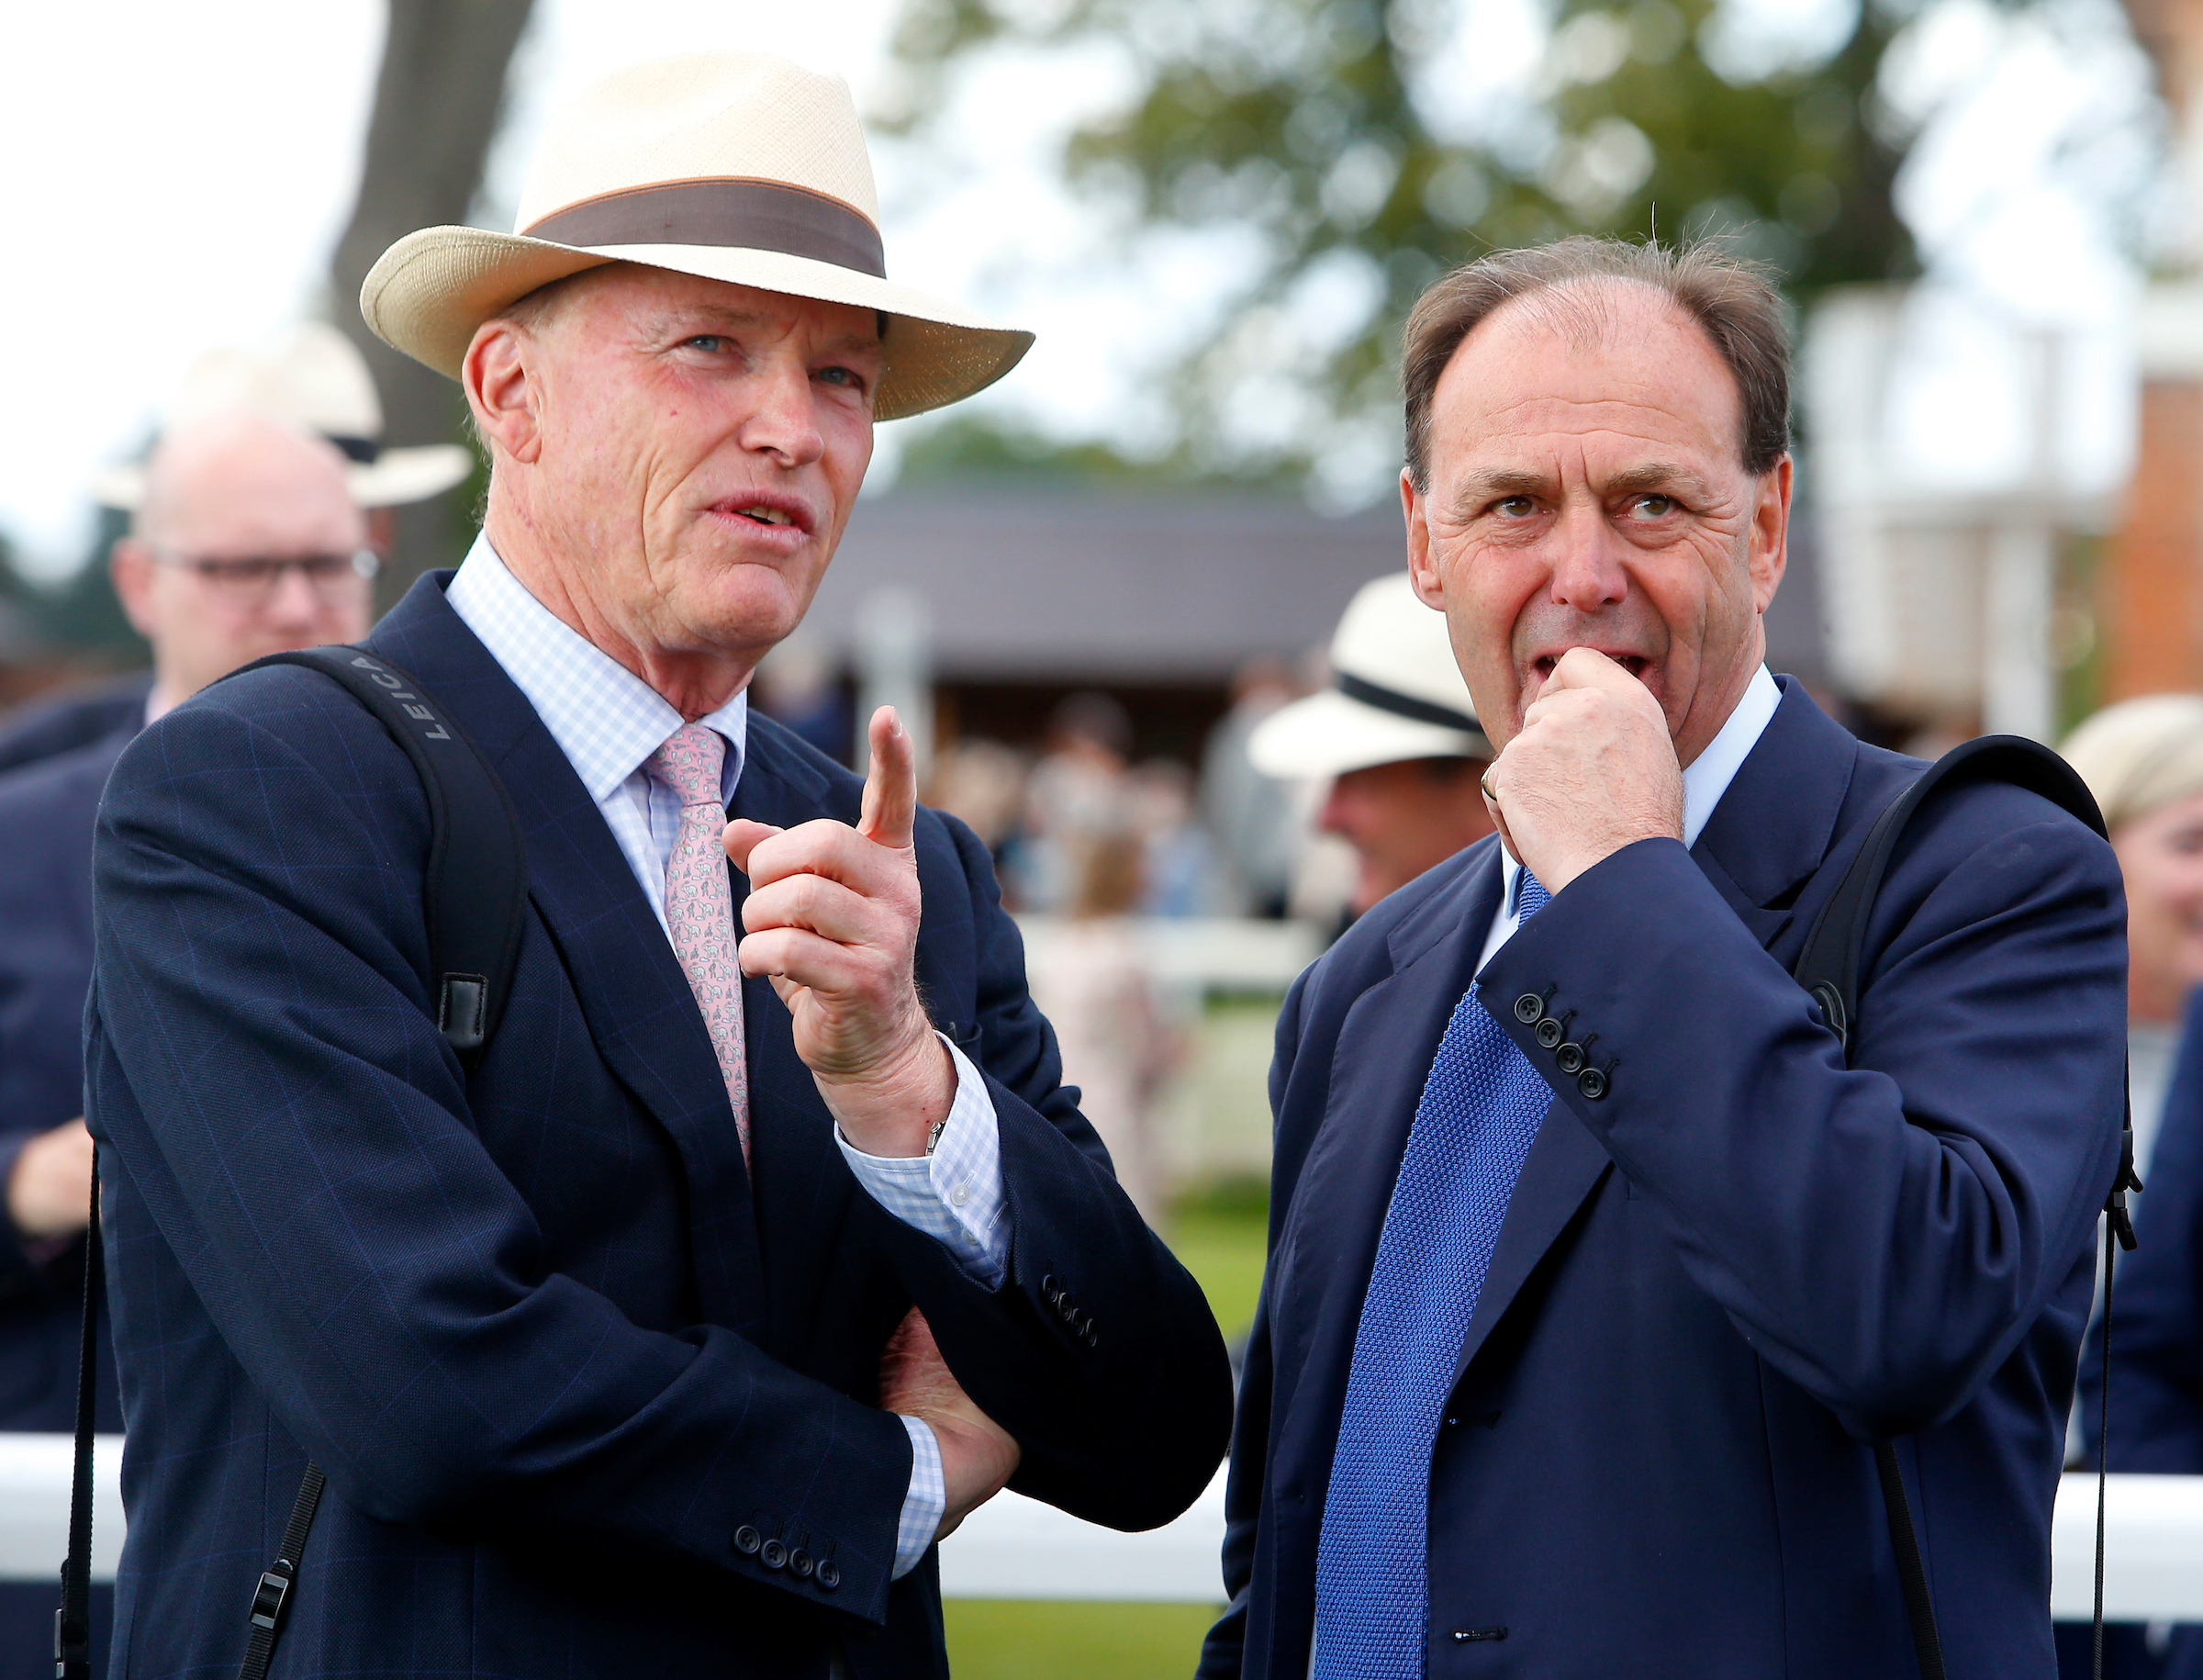 When a plan comes together: John Gosden and Angus Gold at York - FocusOnRacing